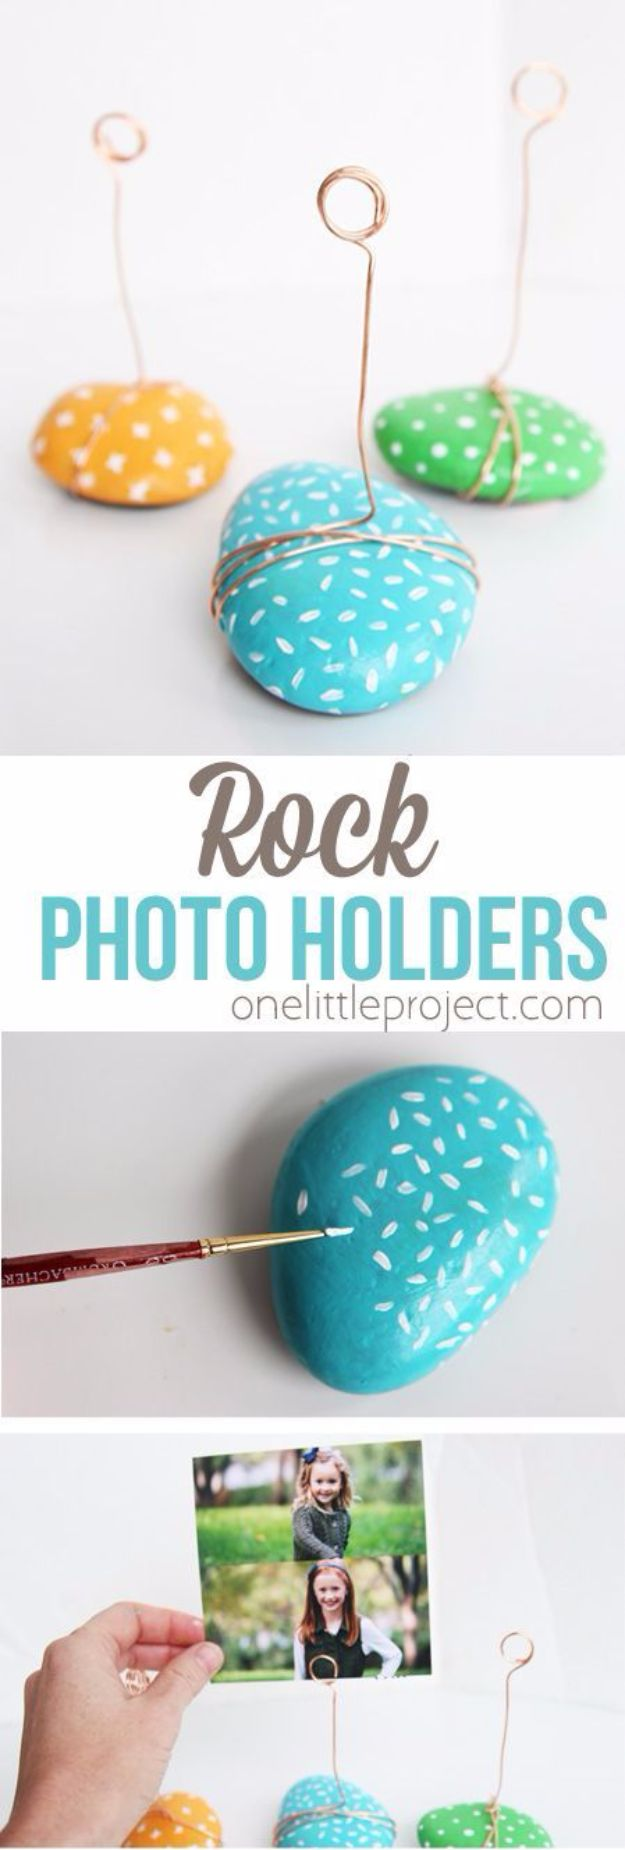 Crafts for Teens to Make and Sell - DIY Rock Photo Holder - Cheap and Easy DIY Ideas To Make For Extra Money - Best Things to Sell On Etsy, Dollar Store Craft Ideas, Quick Projects for Teenagers To Make Spending Cash - DIY Gifts, Wall Art, School Supplies, Room Decor, Jewelry, Fashion, Hair Accessories, Bracelets, Magnets http://diyprojectsforteens.com/crafts-to-sell-teens